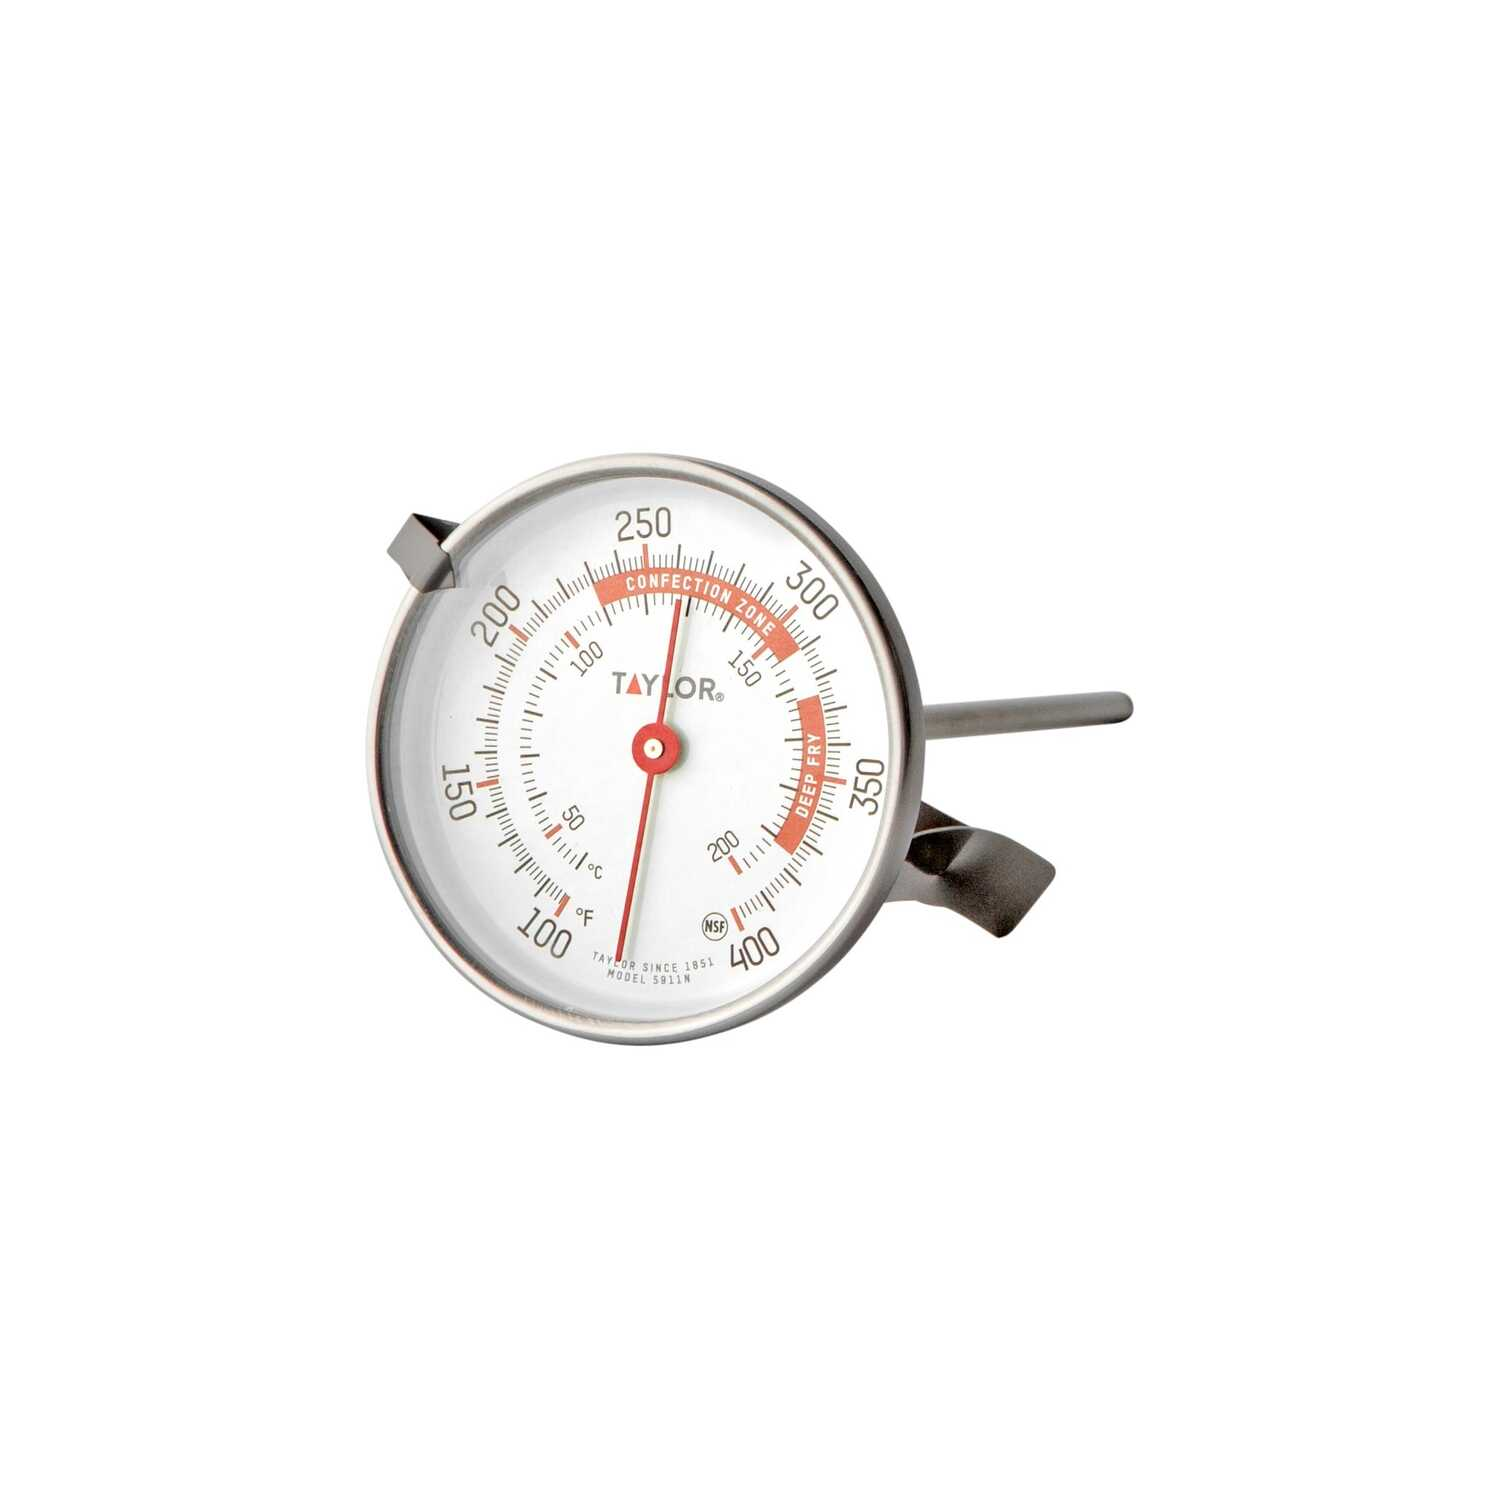 Taylor  Instant Read Analog  C Candy Thermometer